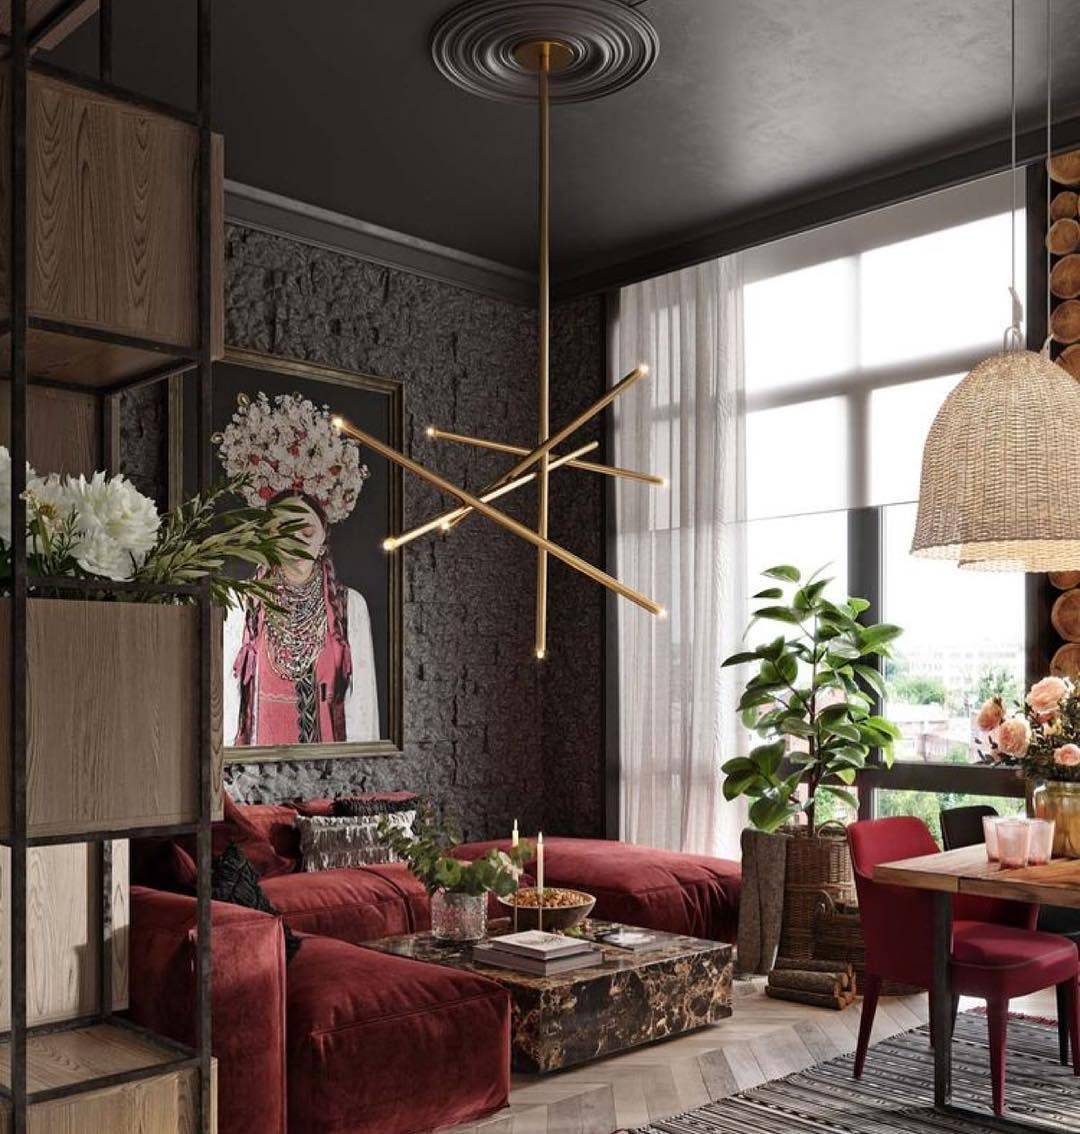 Pin By Shahad Haki On ديكورات بيت Living Room Red Red Apartment Living Decor